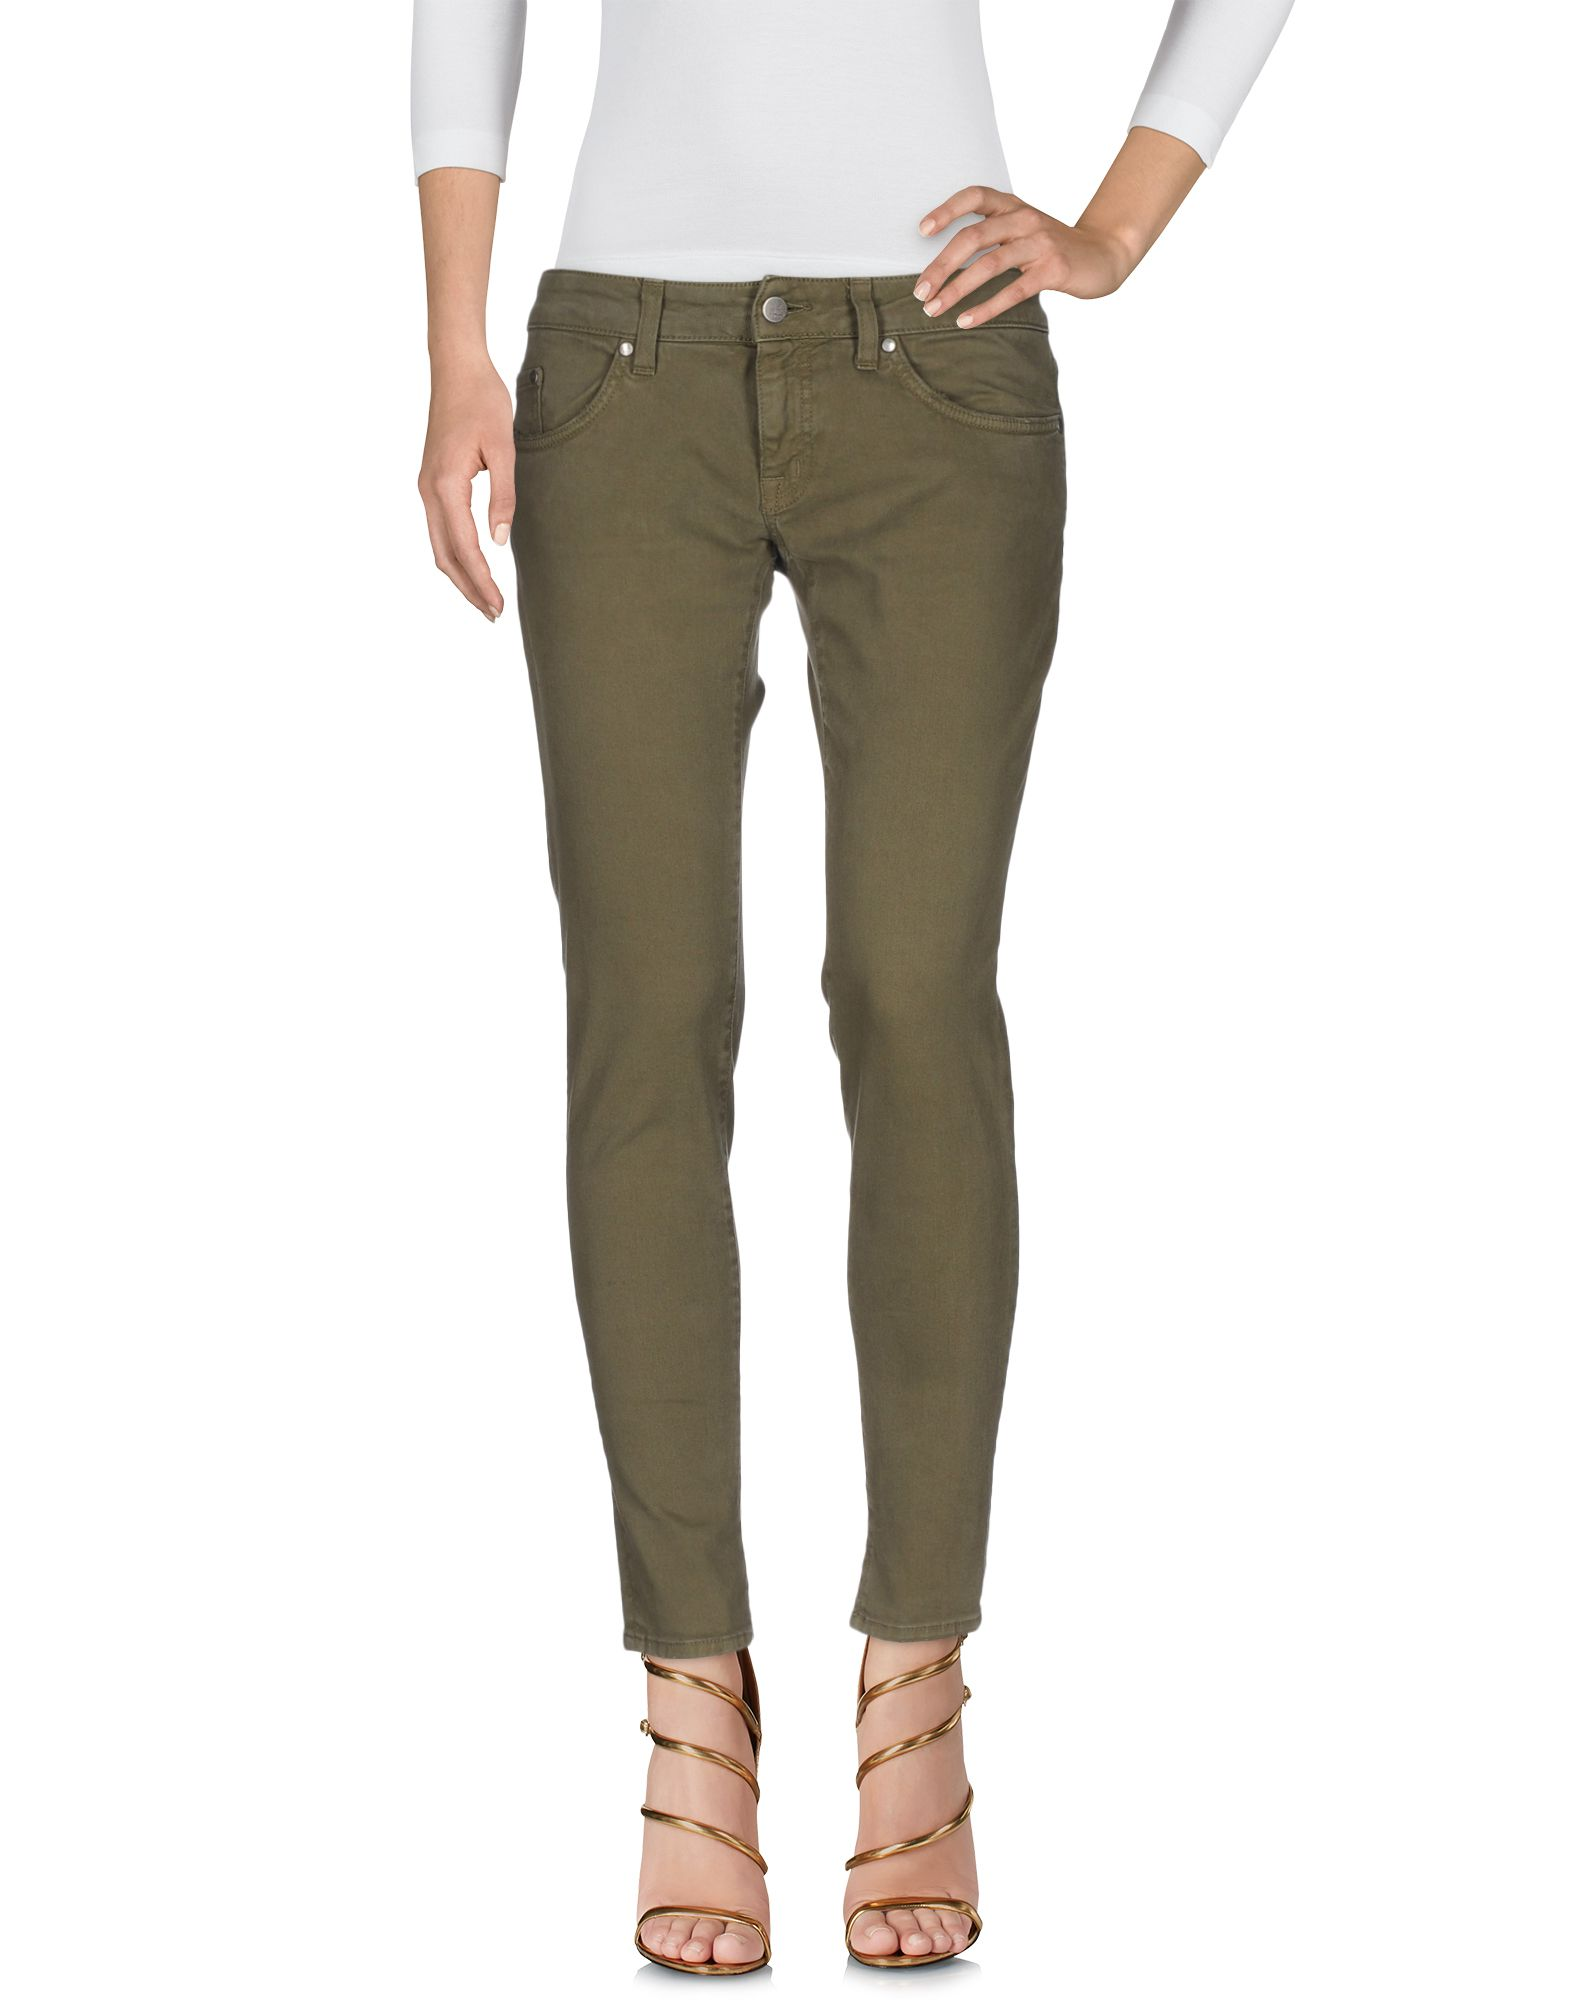 ANTONY MORATO Denim Pants in Military Green